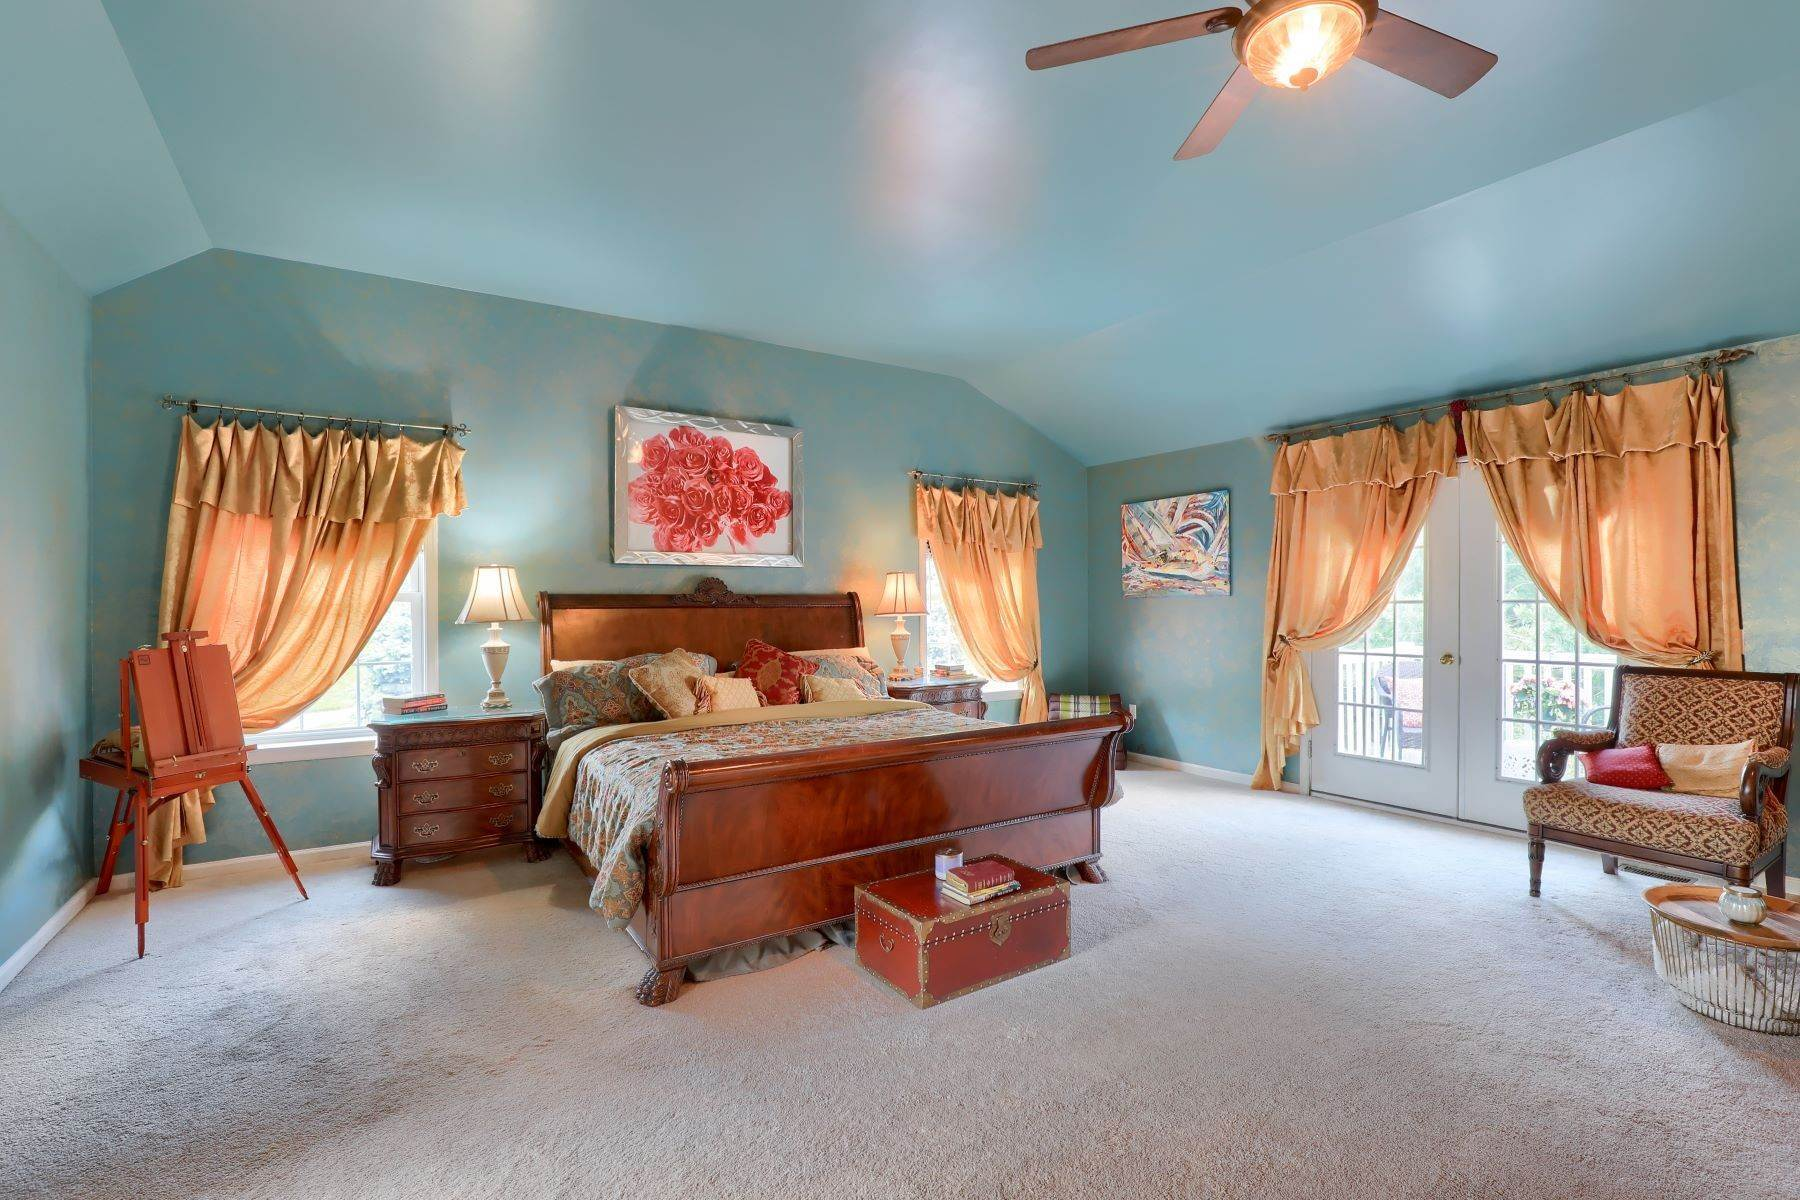 21. Single Family Homes for Sale at 195 W Millport Road Lititz, Pennsylvania 17543 United States